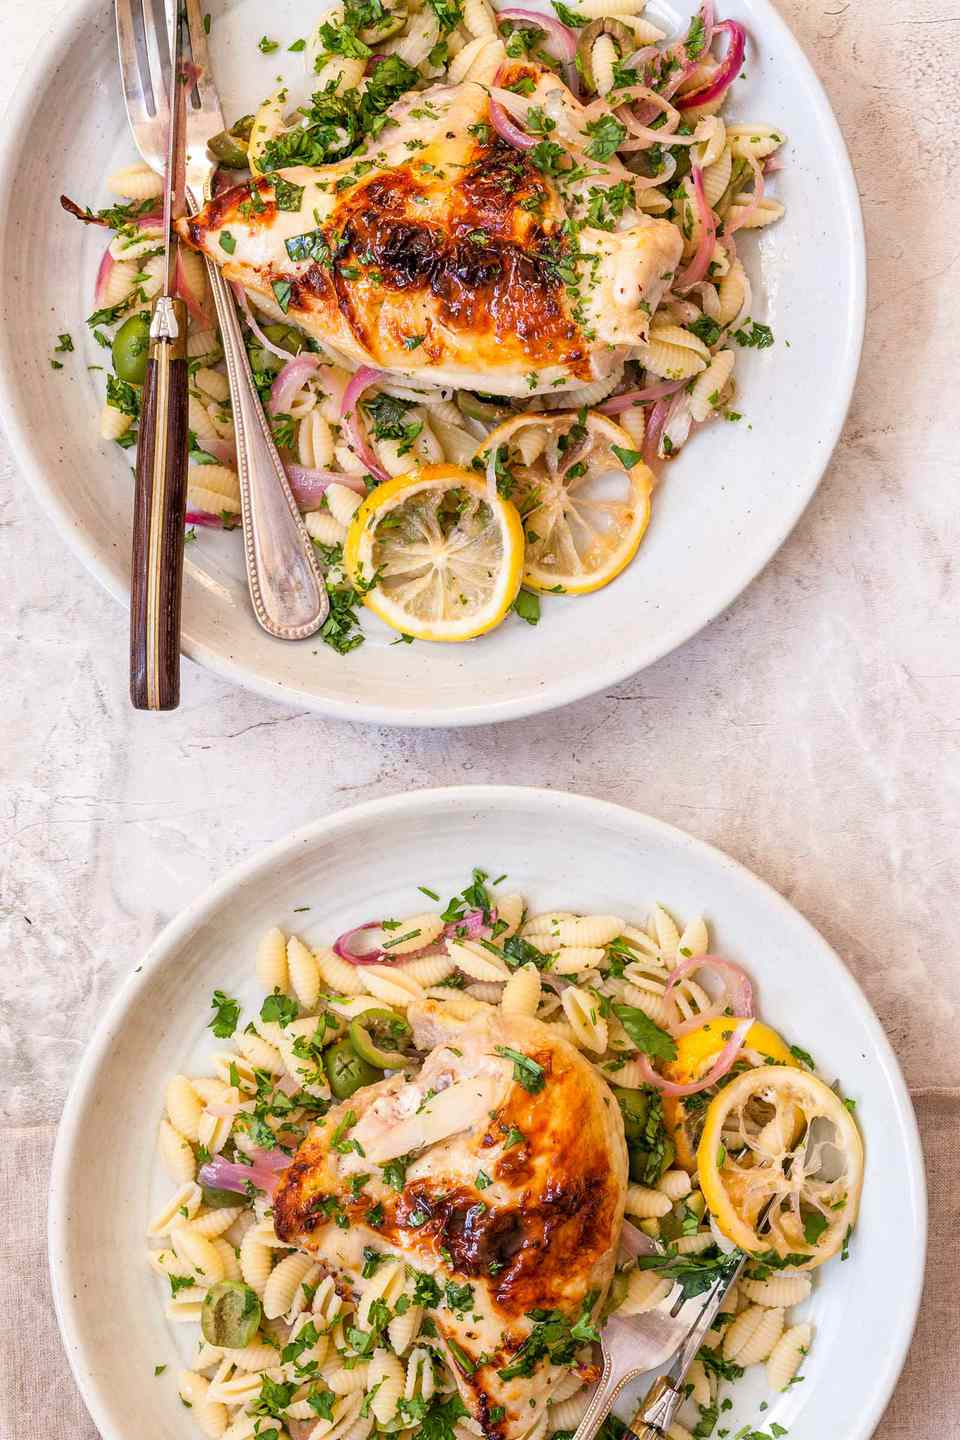 A vertical photo of two plates with easy weeknight chicken on each. Each plate has a golden brown roasted chicken breast, roasted lemon wedges, sliced red onion, shell pasta and herbs scattered over top. The top plate has a knife and fork on the left side of the plate. The bottom plate has the top of a fork visible on the bottom right corner.